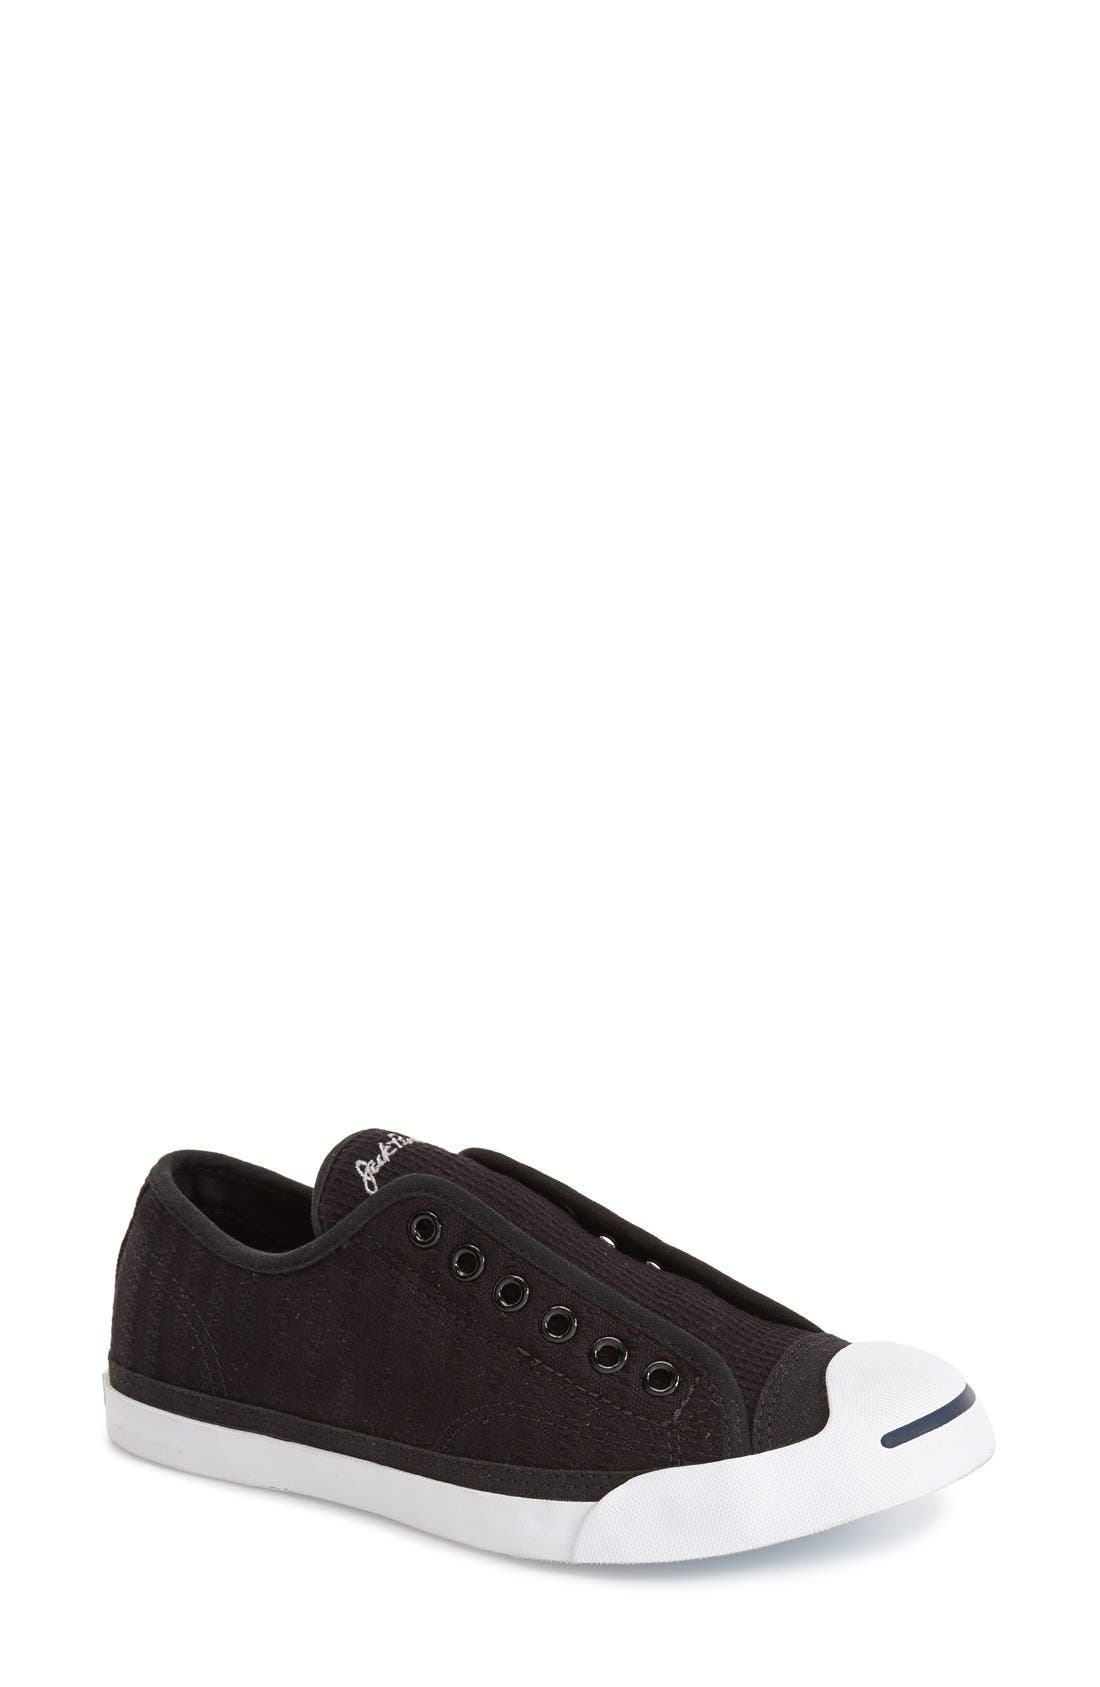 Main Image - Converse 'Jack Purcell' Garment Dye Low Top Sneaker (Women) (Nordstrom Exclusive)